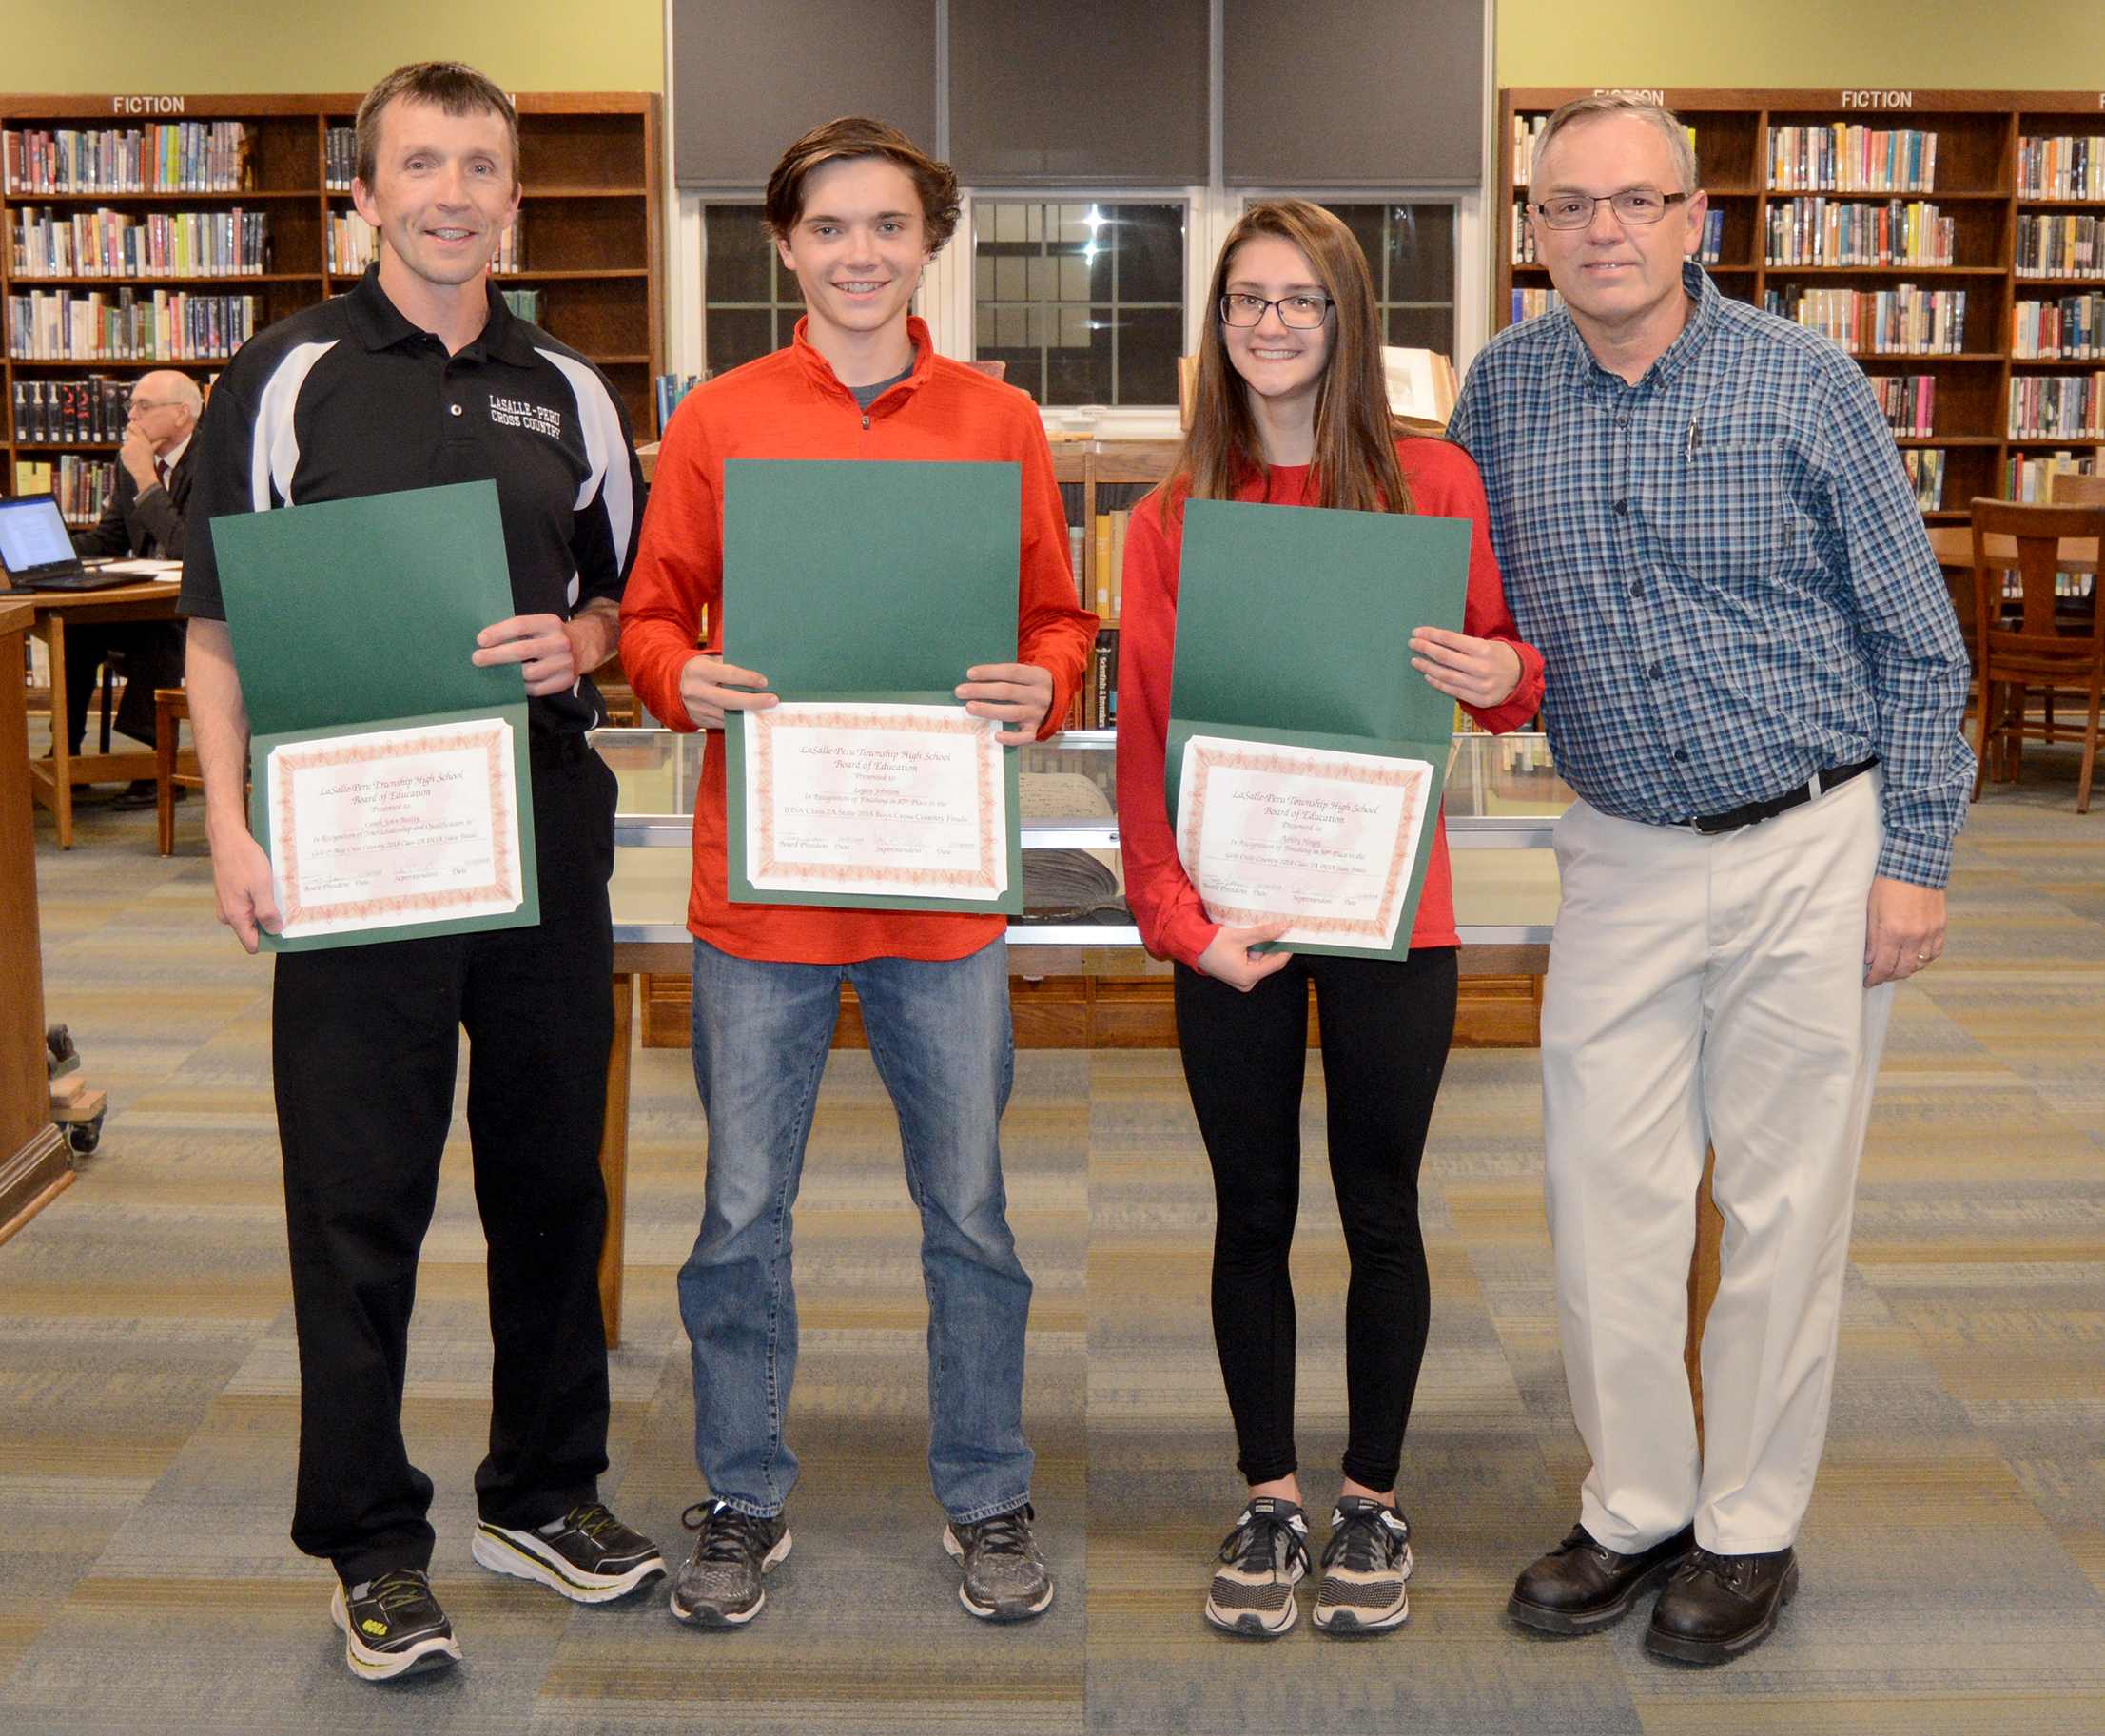 The board Recognized student-athletes and coaches of the state-qualifying cross-country team.